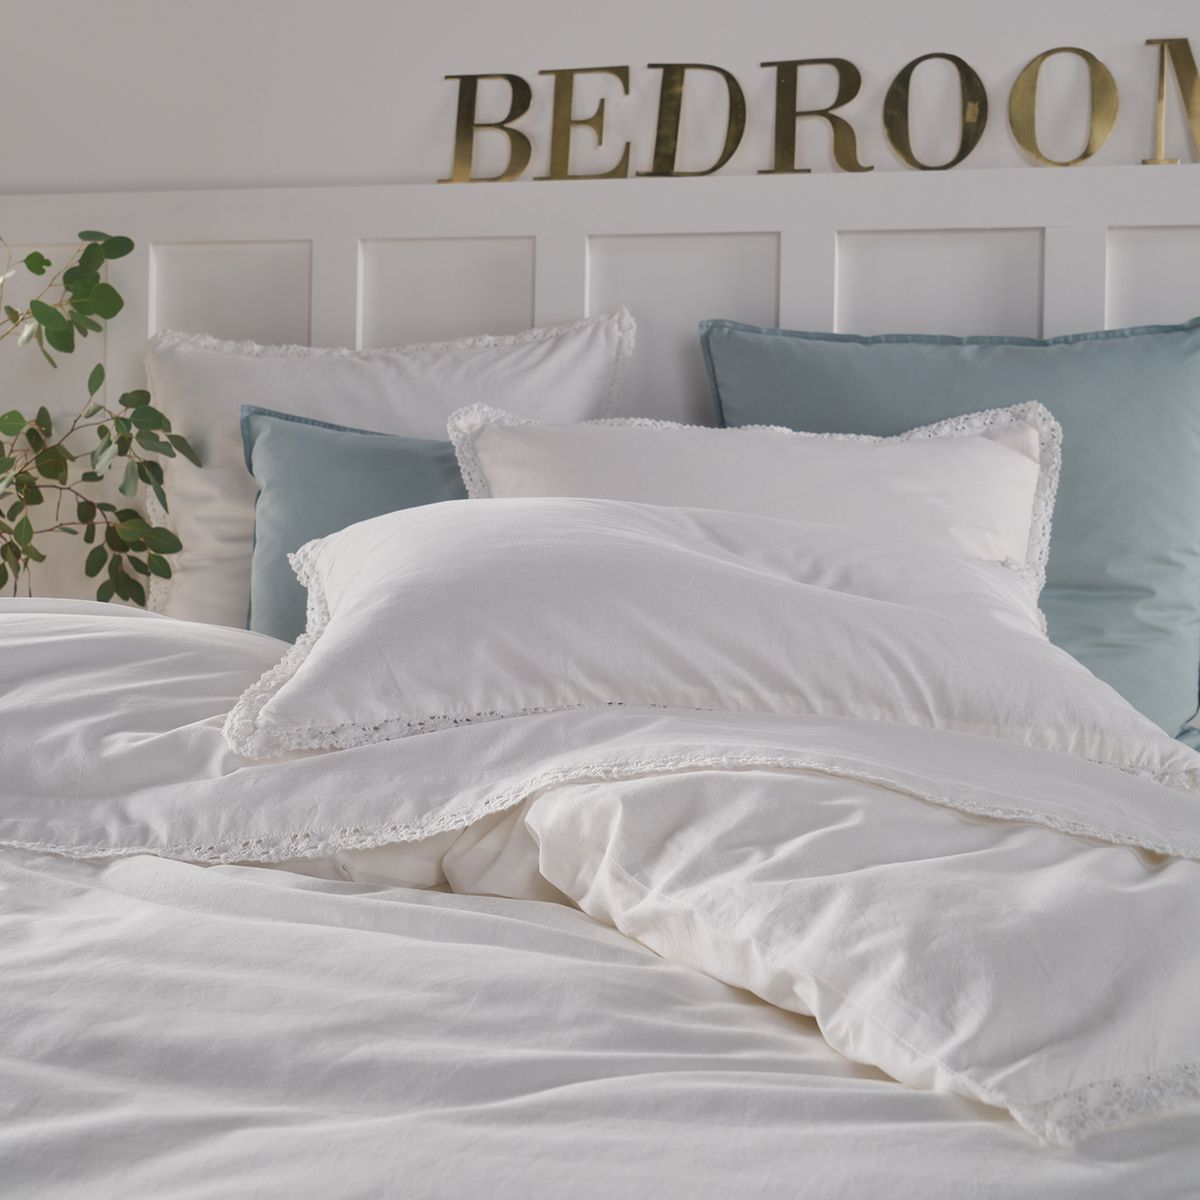 Alhambra Duvet Cover in Washed Cotton